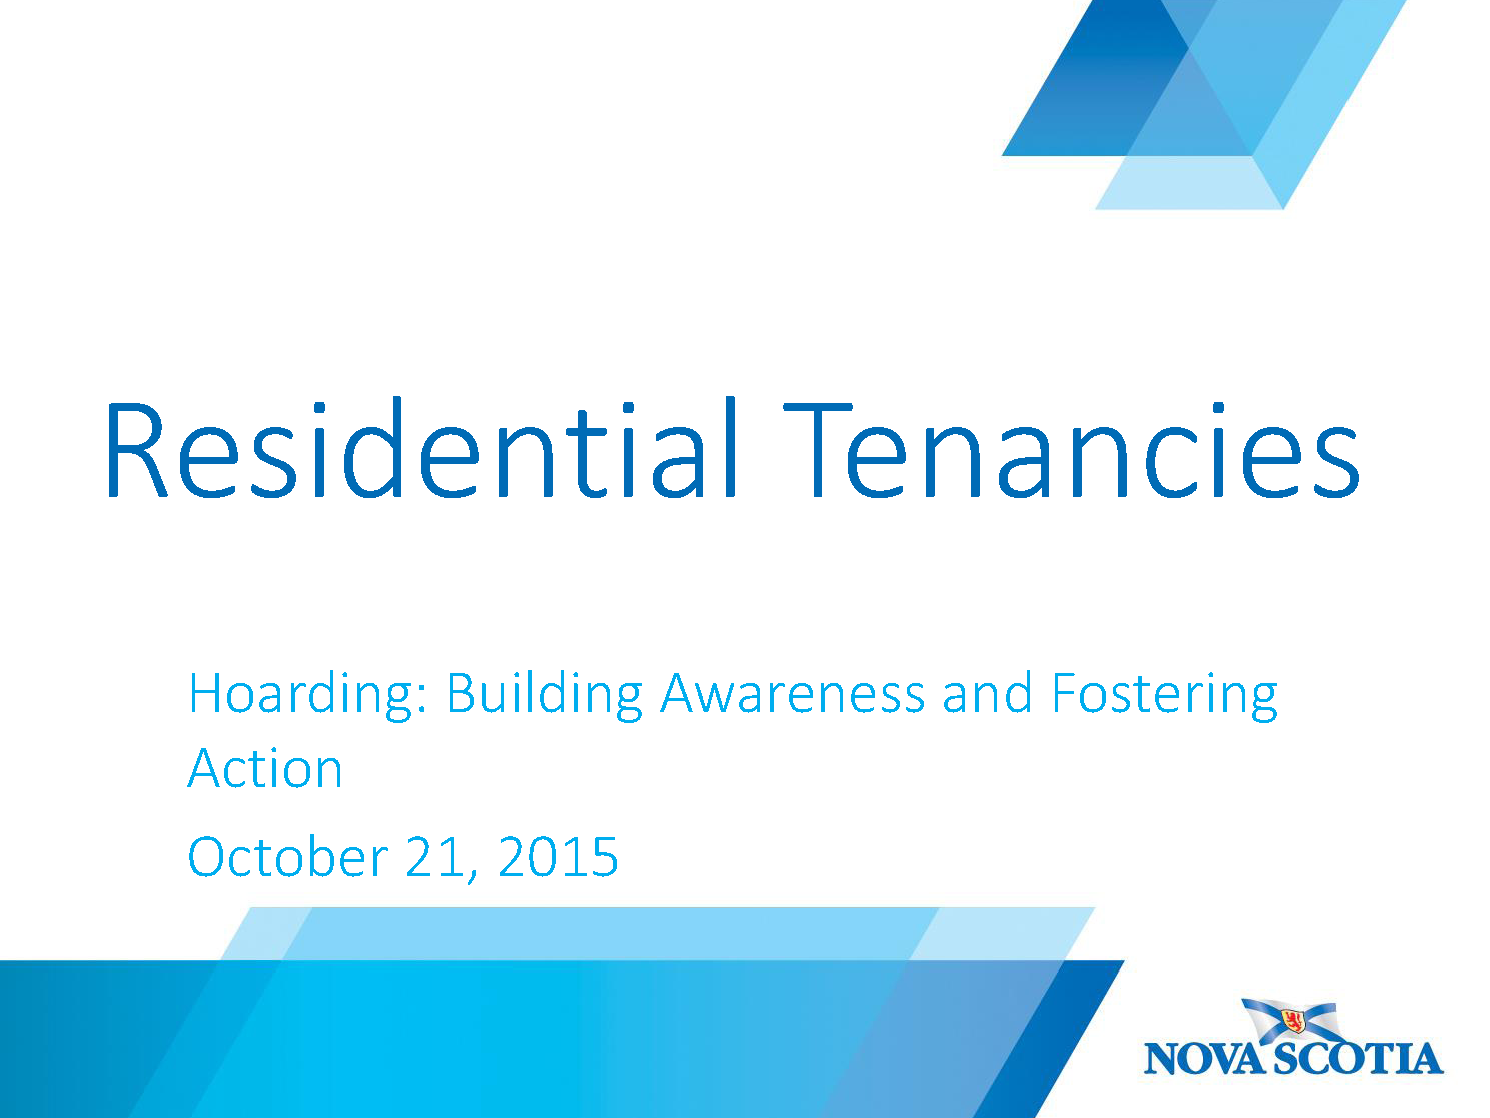 HoardingSessionResidentalTenancies